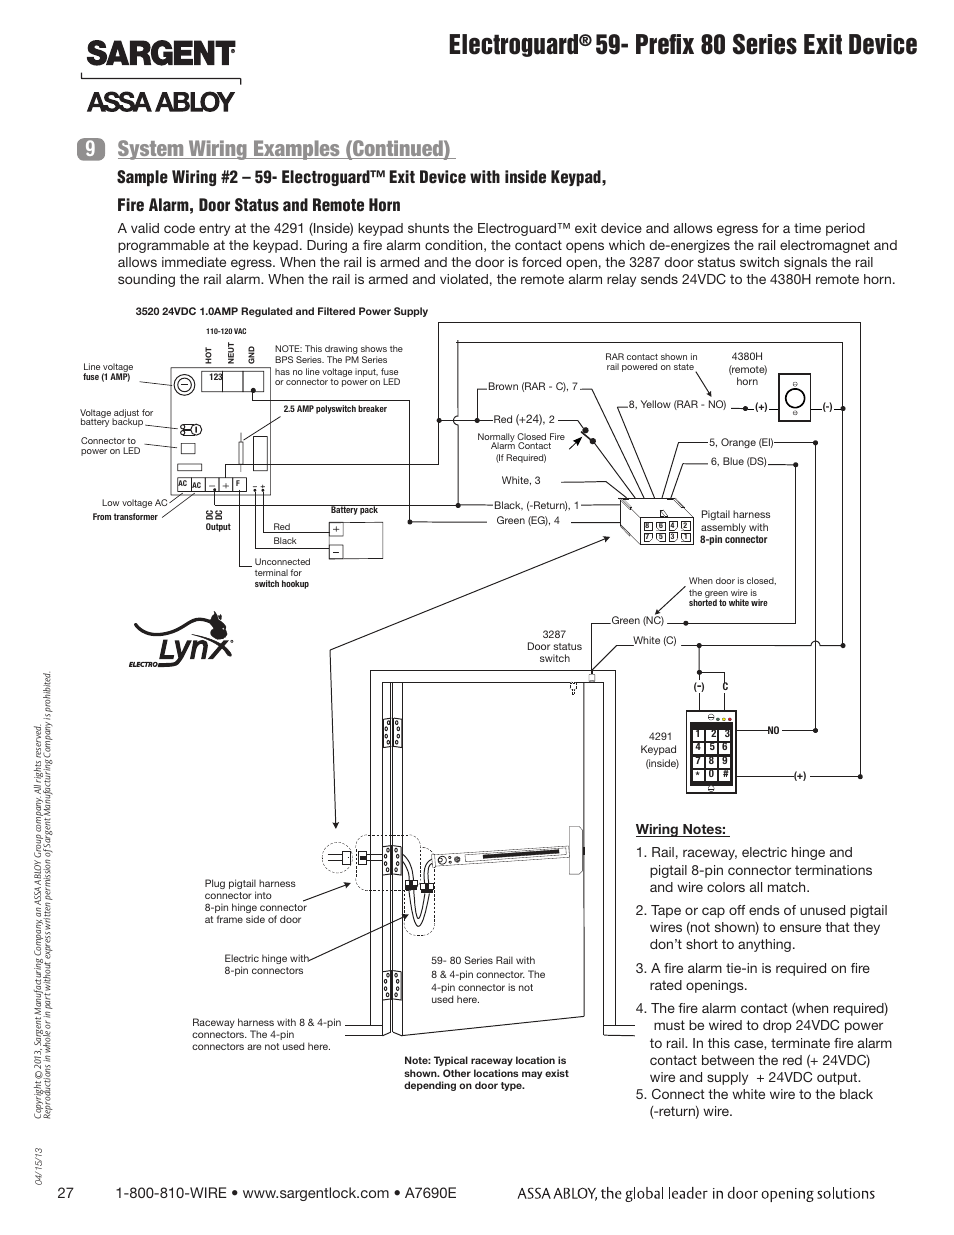 hight resolution of electroguard prefix 80 series exit device system wiring examples continued 9 sargent fm8700 surface vertical rod exit device user manual page 27